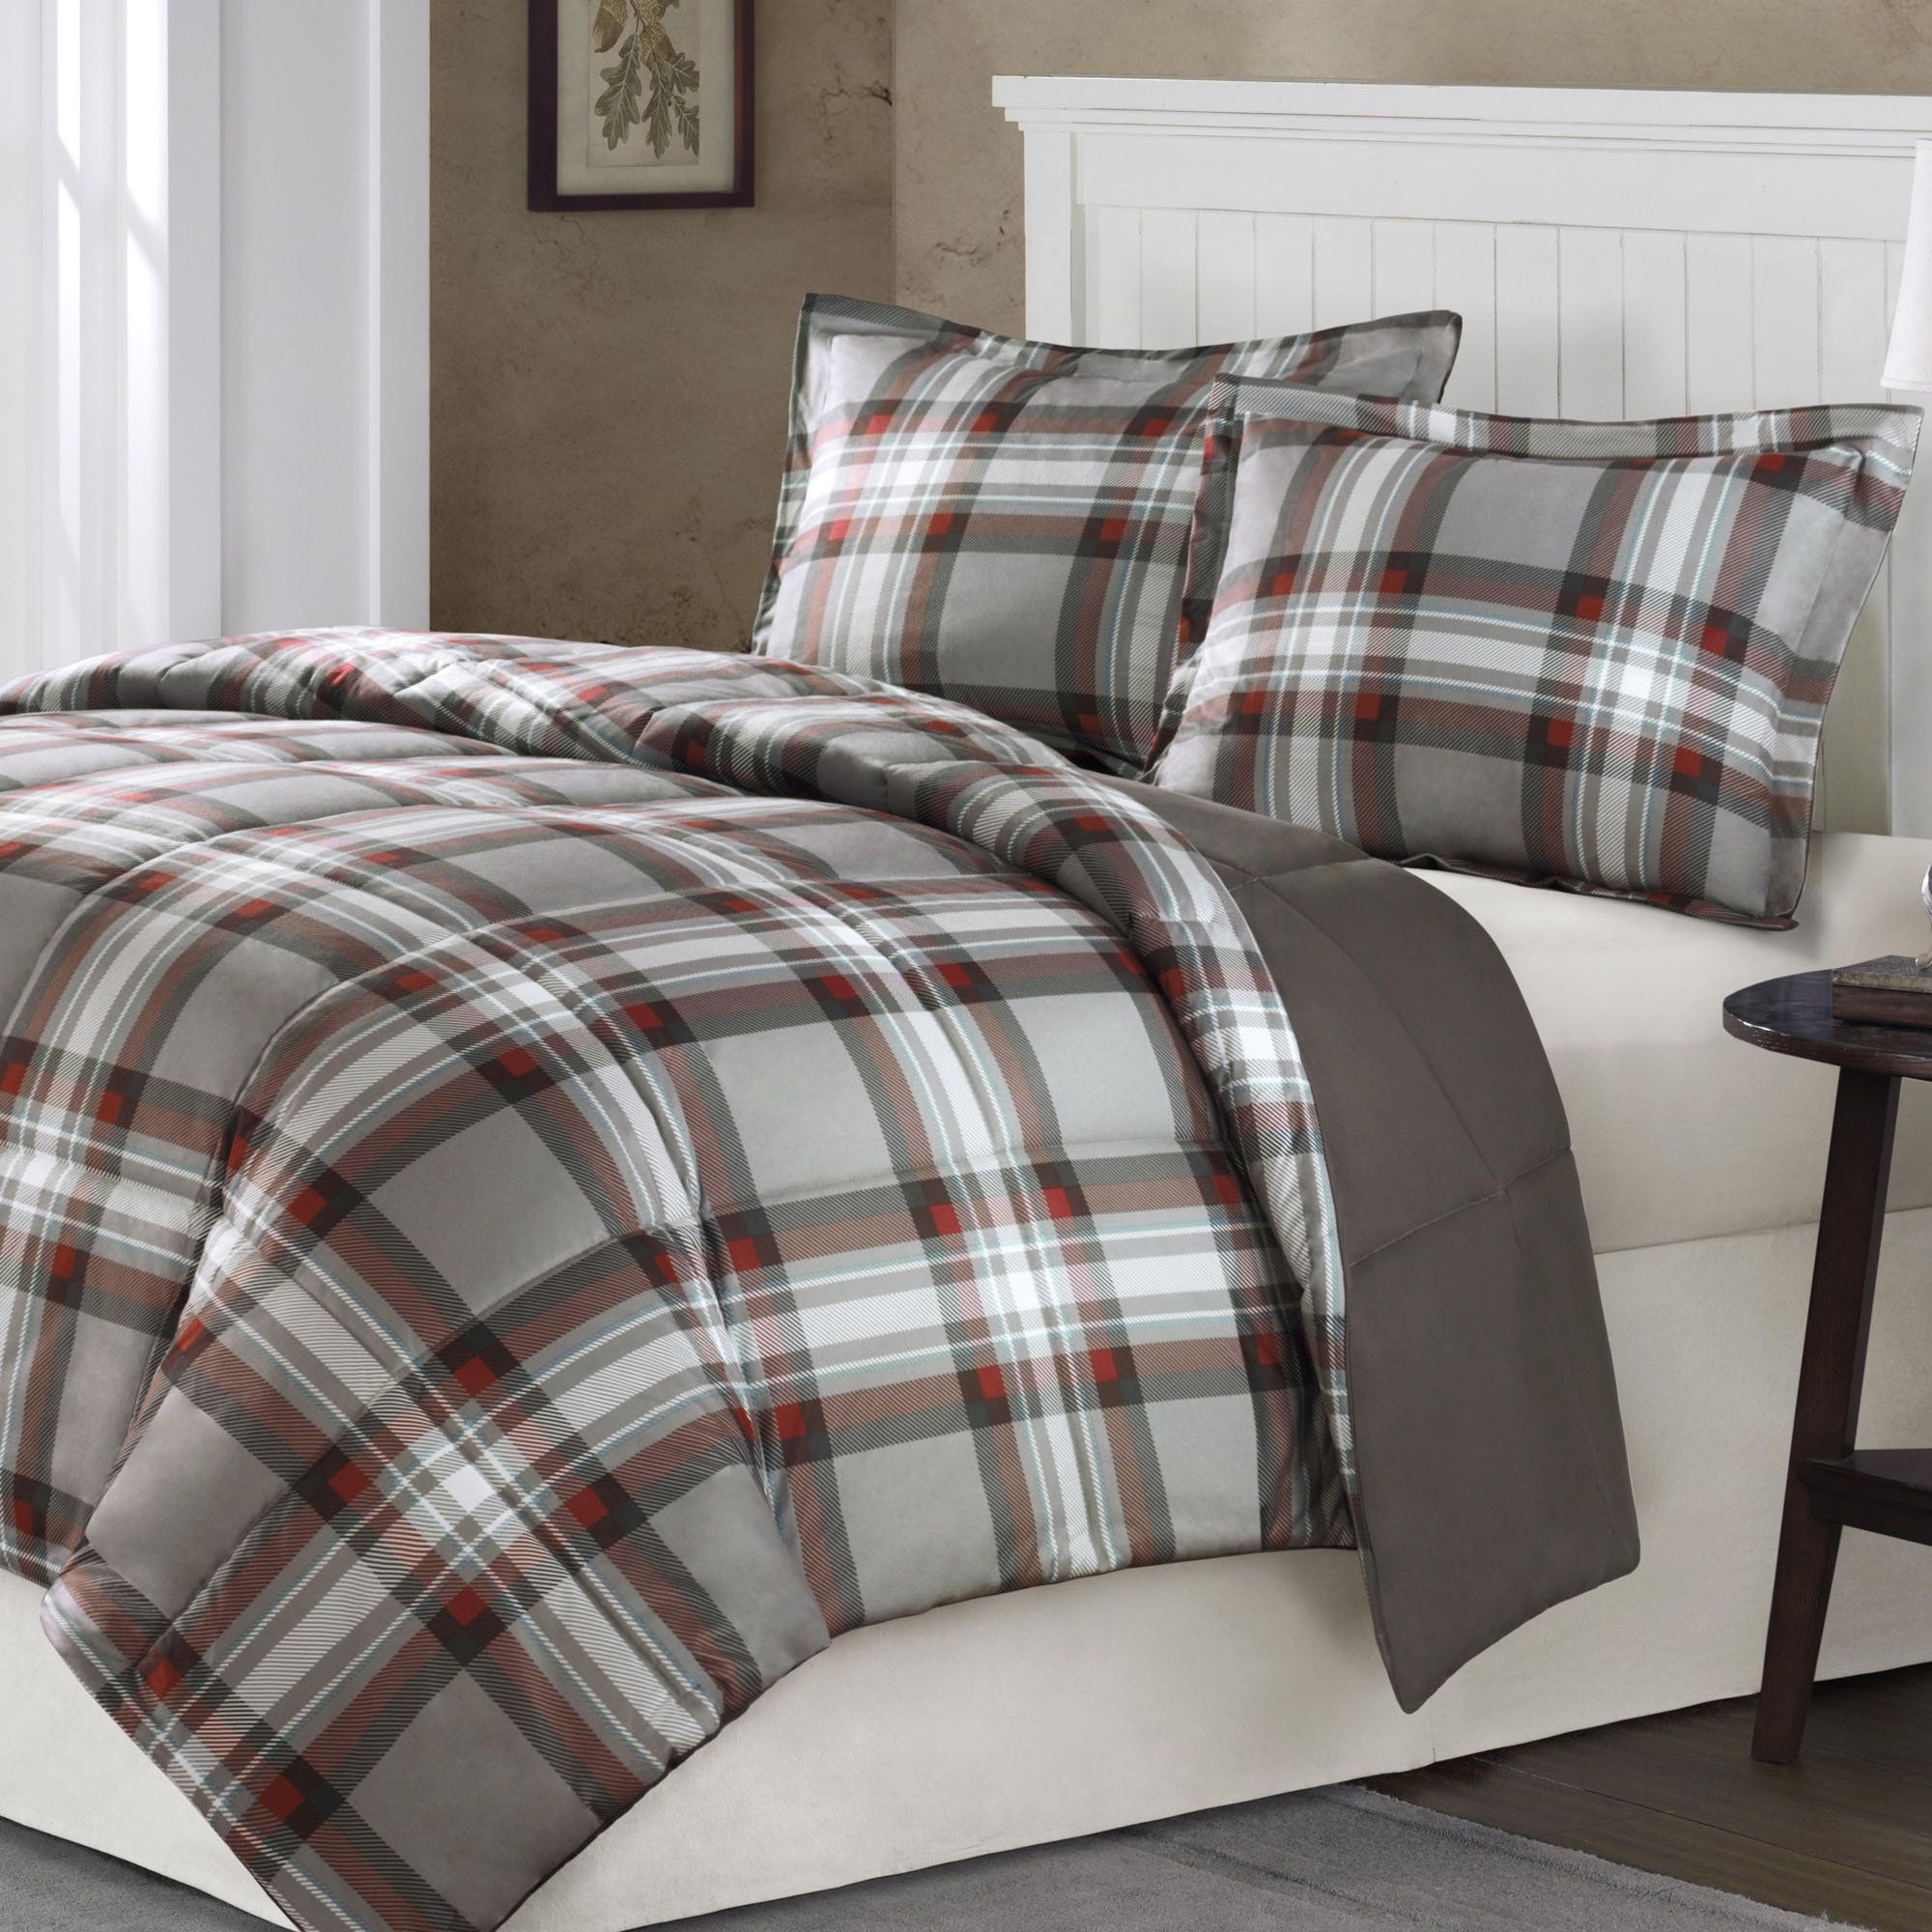 Grey Plaid Bedding Home Kirkland Plaid Mini Comforter